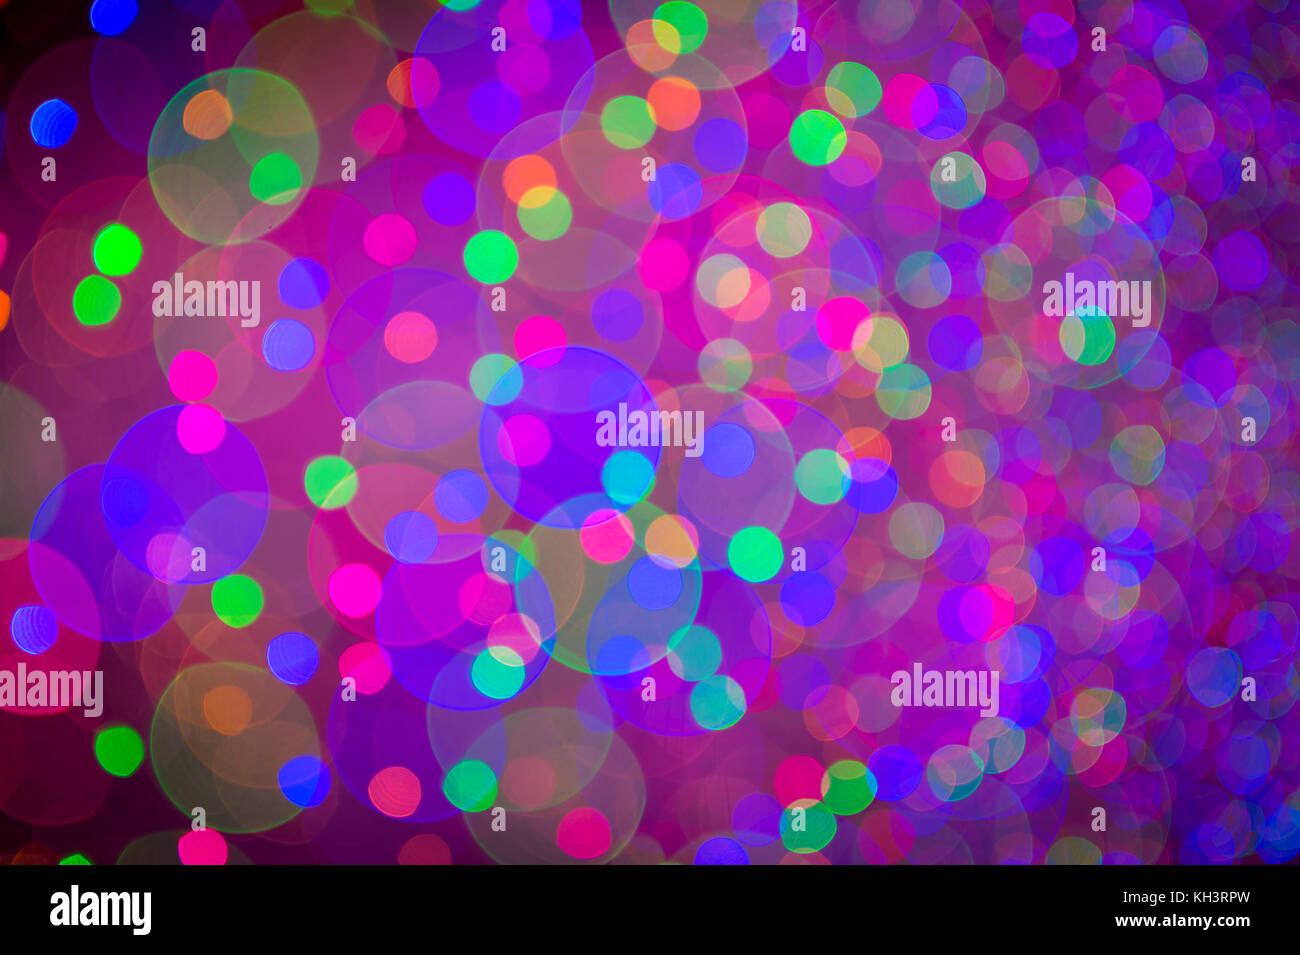 Holiday background in an abstract defocus in vibrant magenta pink bokeh with spots of other colors - Stock Image